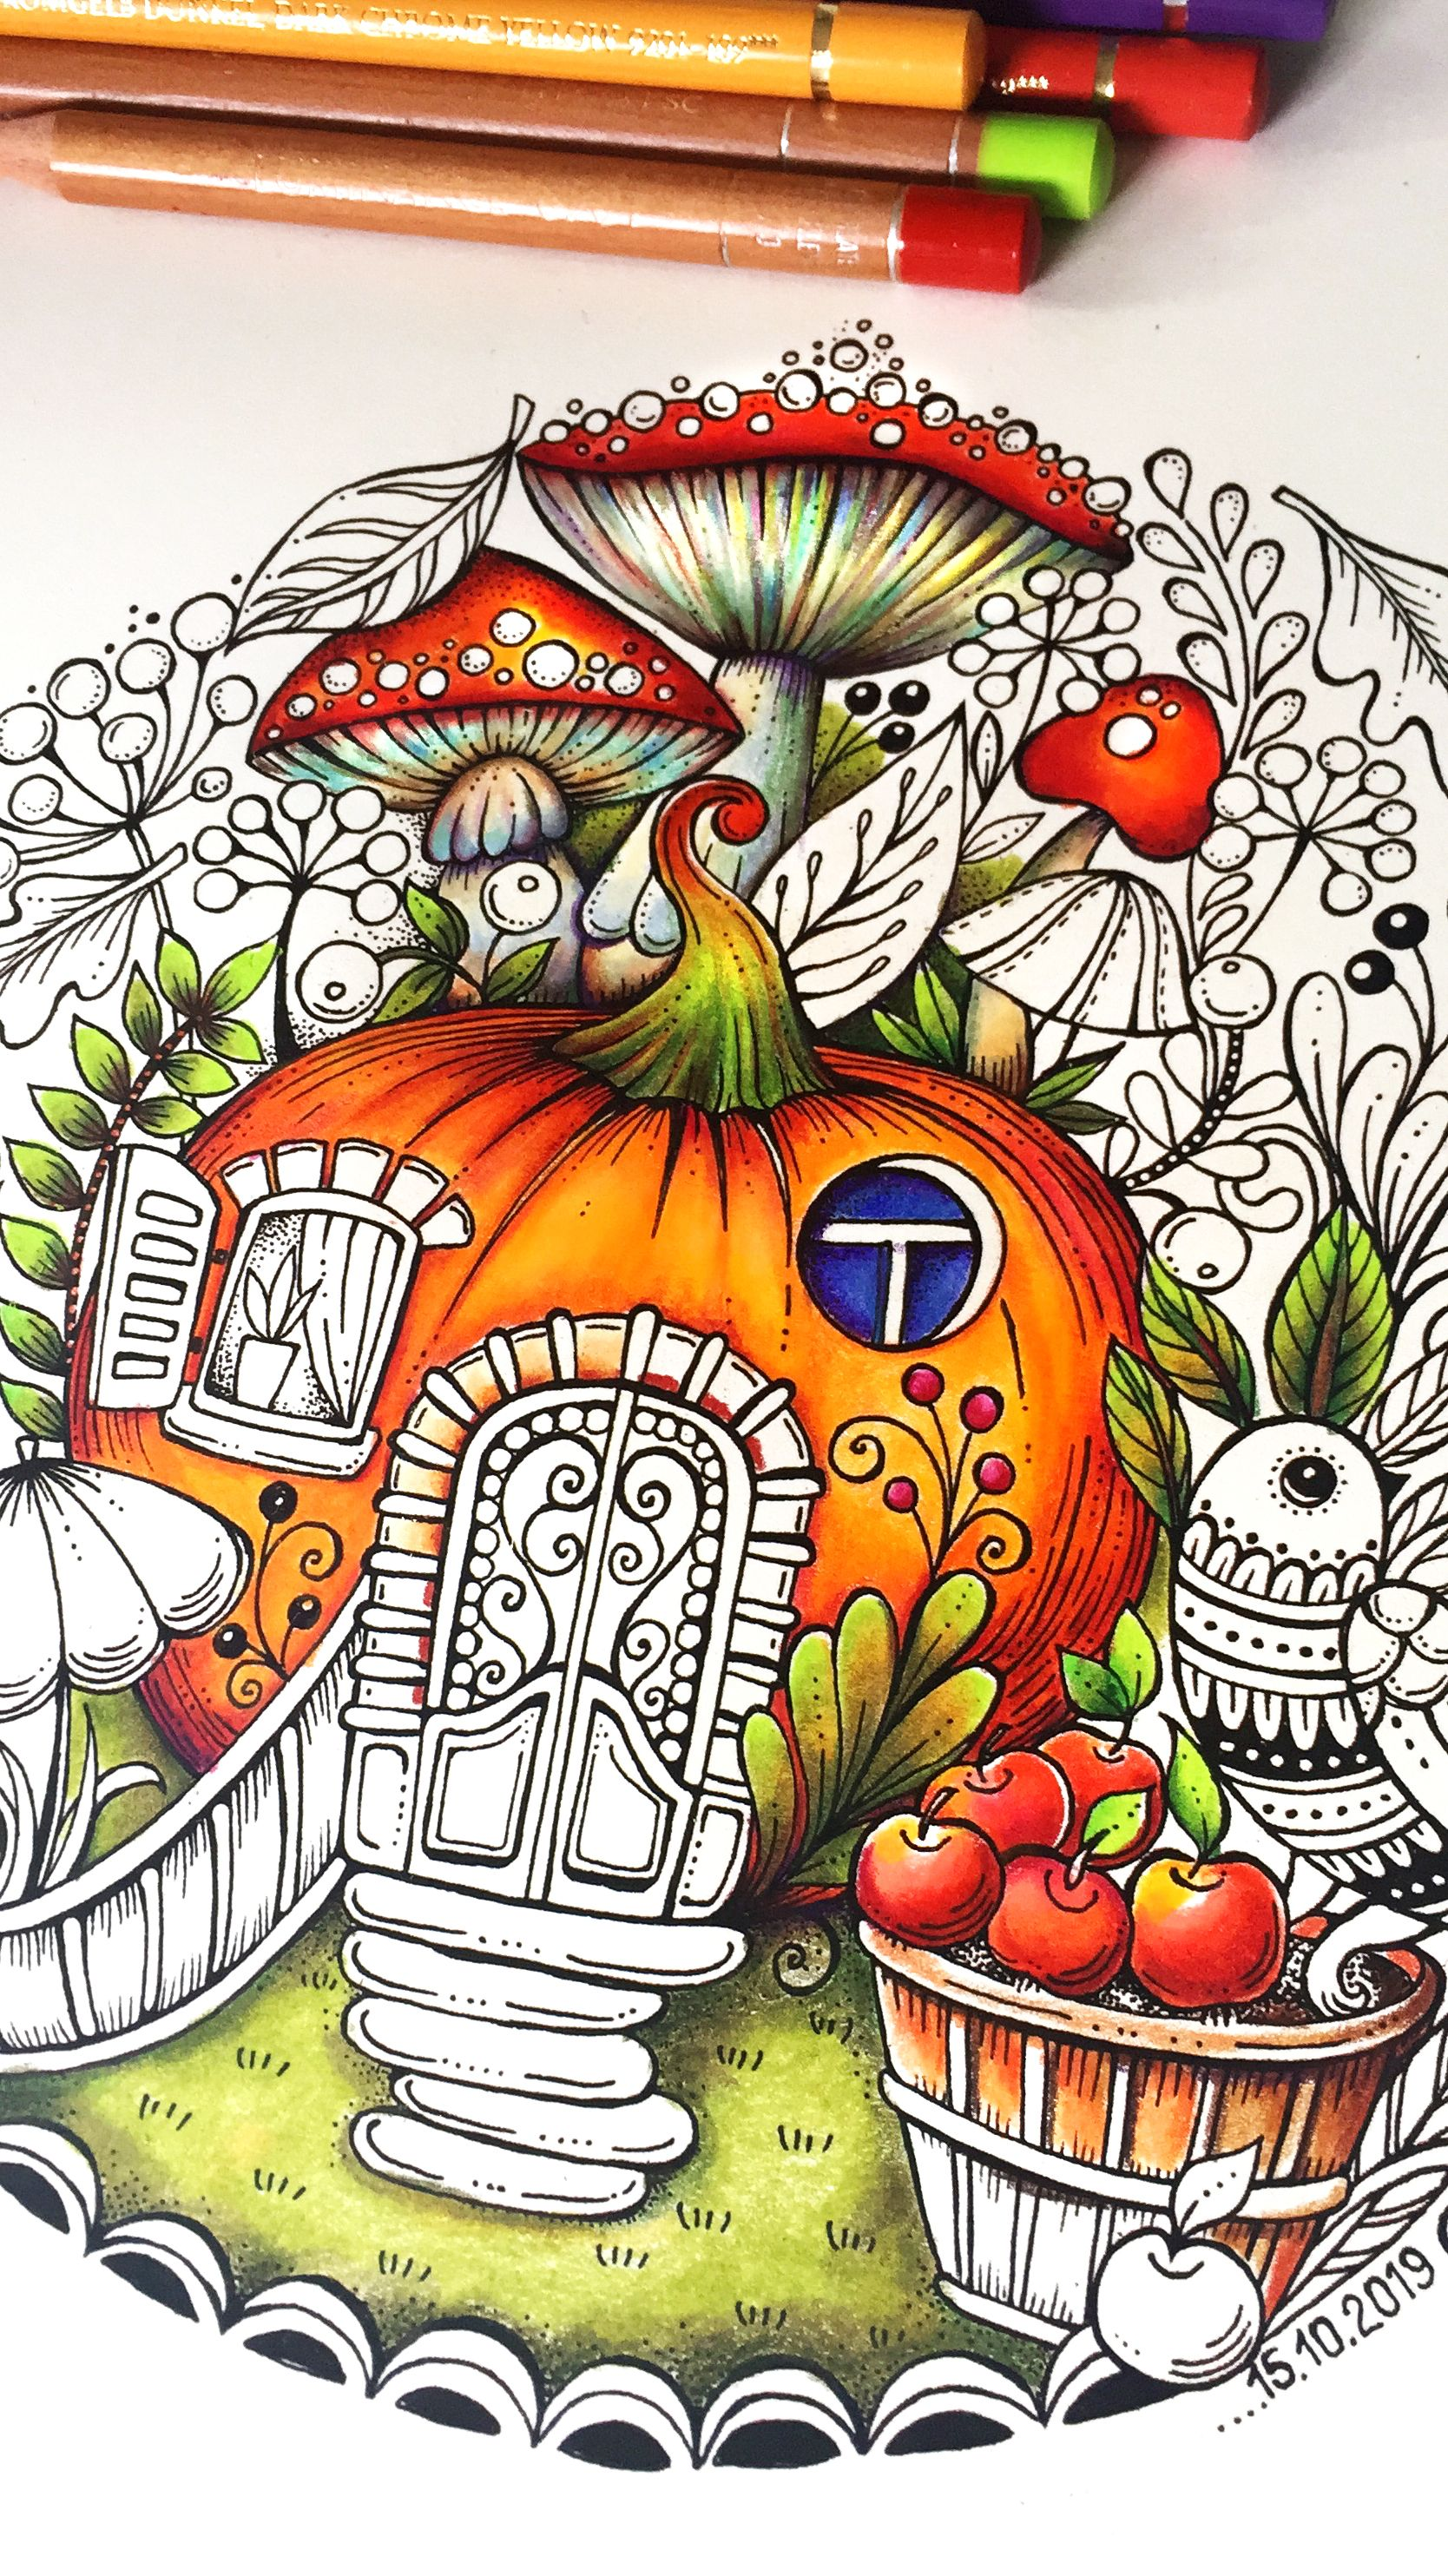 How To Color Pumpkin House Ritaberman Autumn Illustration Adultcolouringbook Passion Botanical C Halloween Coloring Photo And Video Instagram Photo